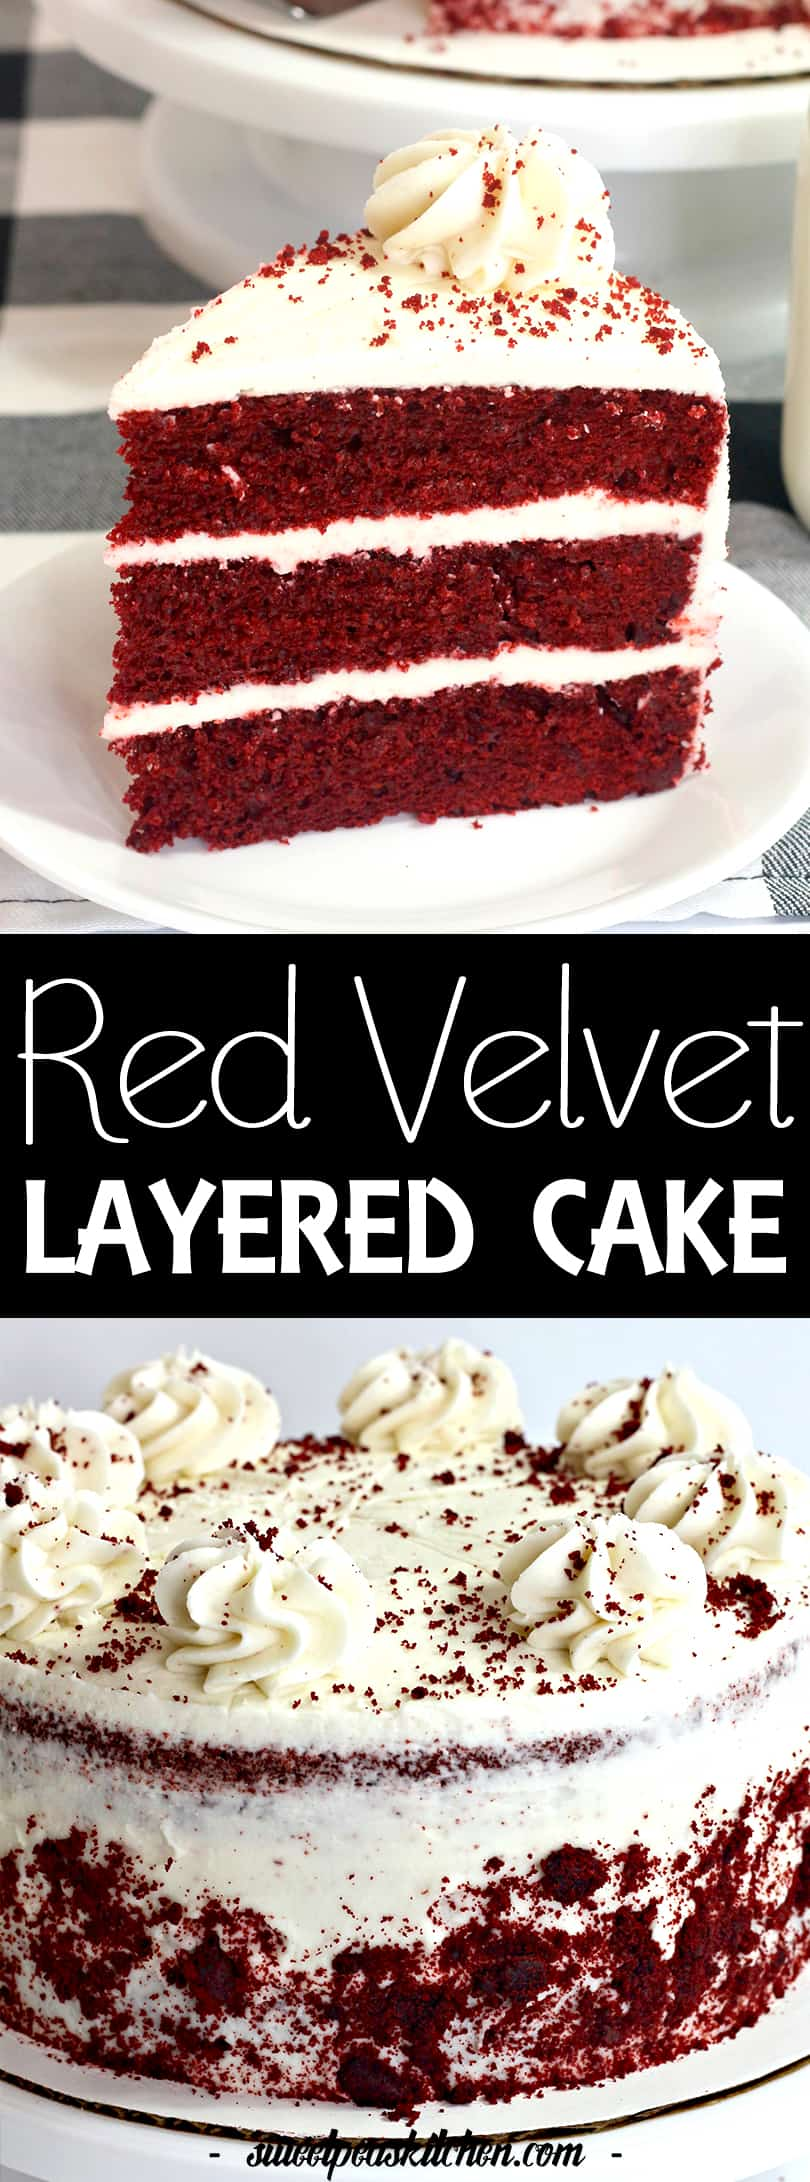 Easy Layered Red Velvet Cake Recipe